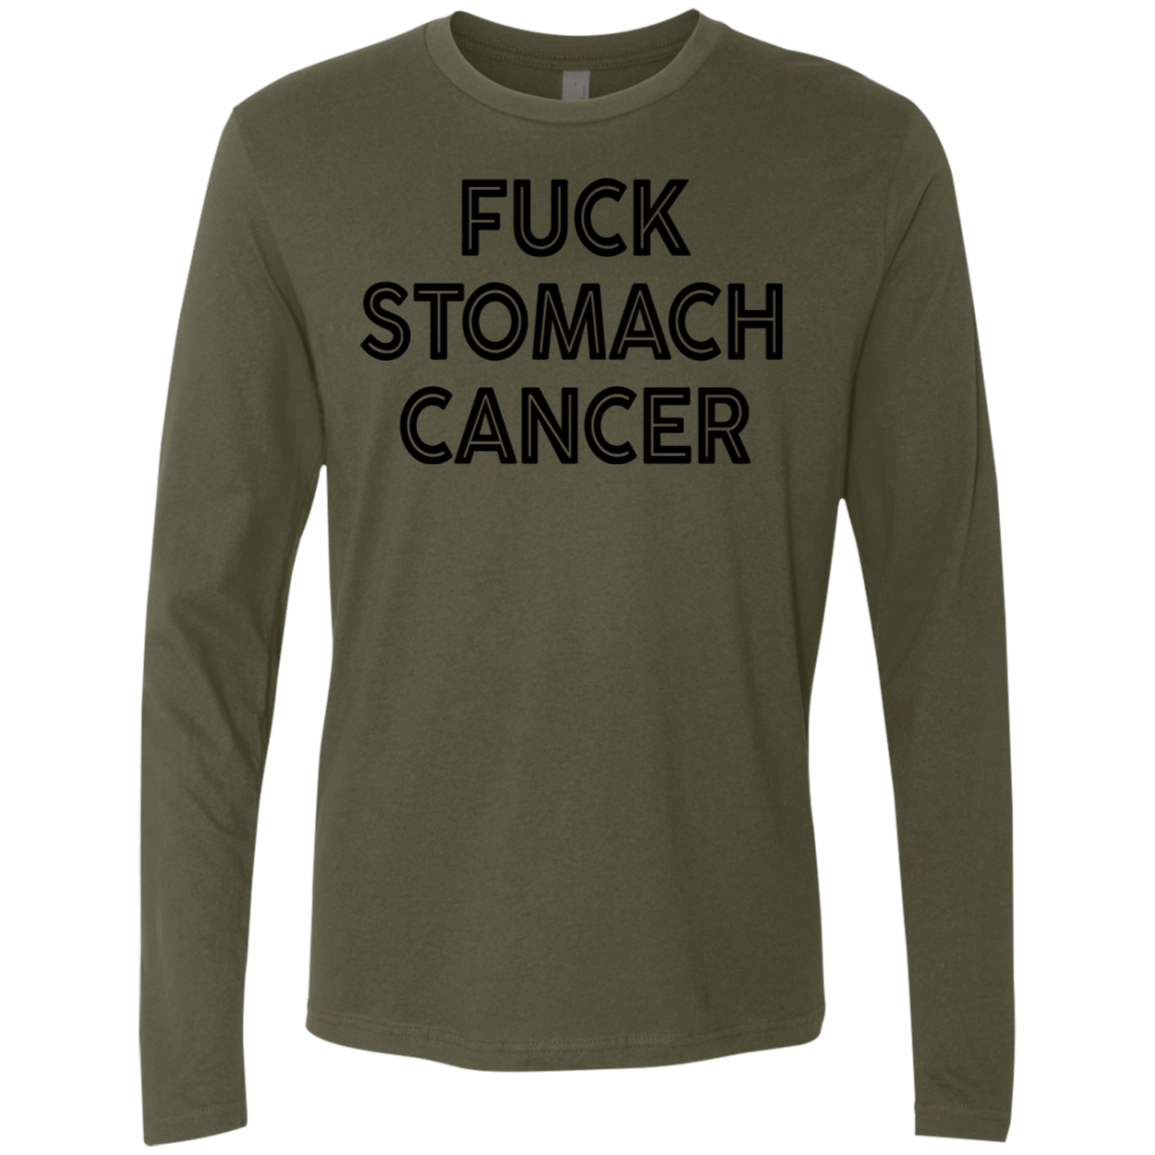 Fuck Stomach Cancer Men's Long Sleeve Tee